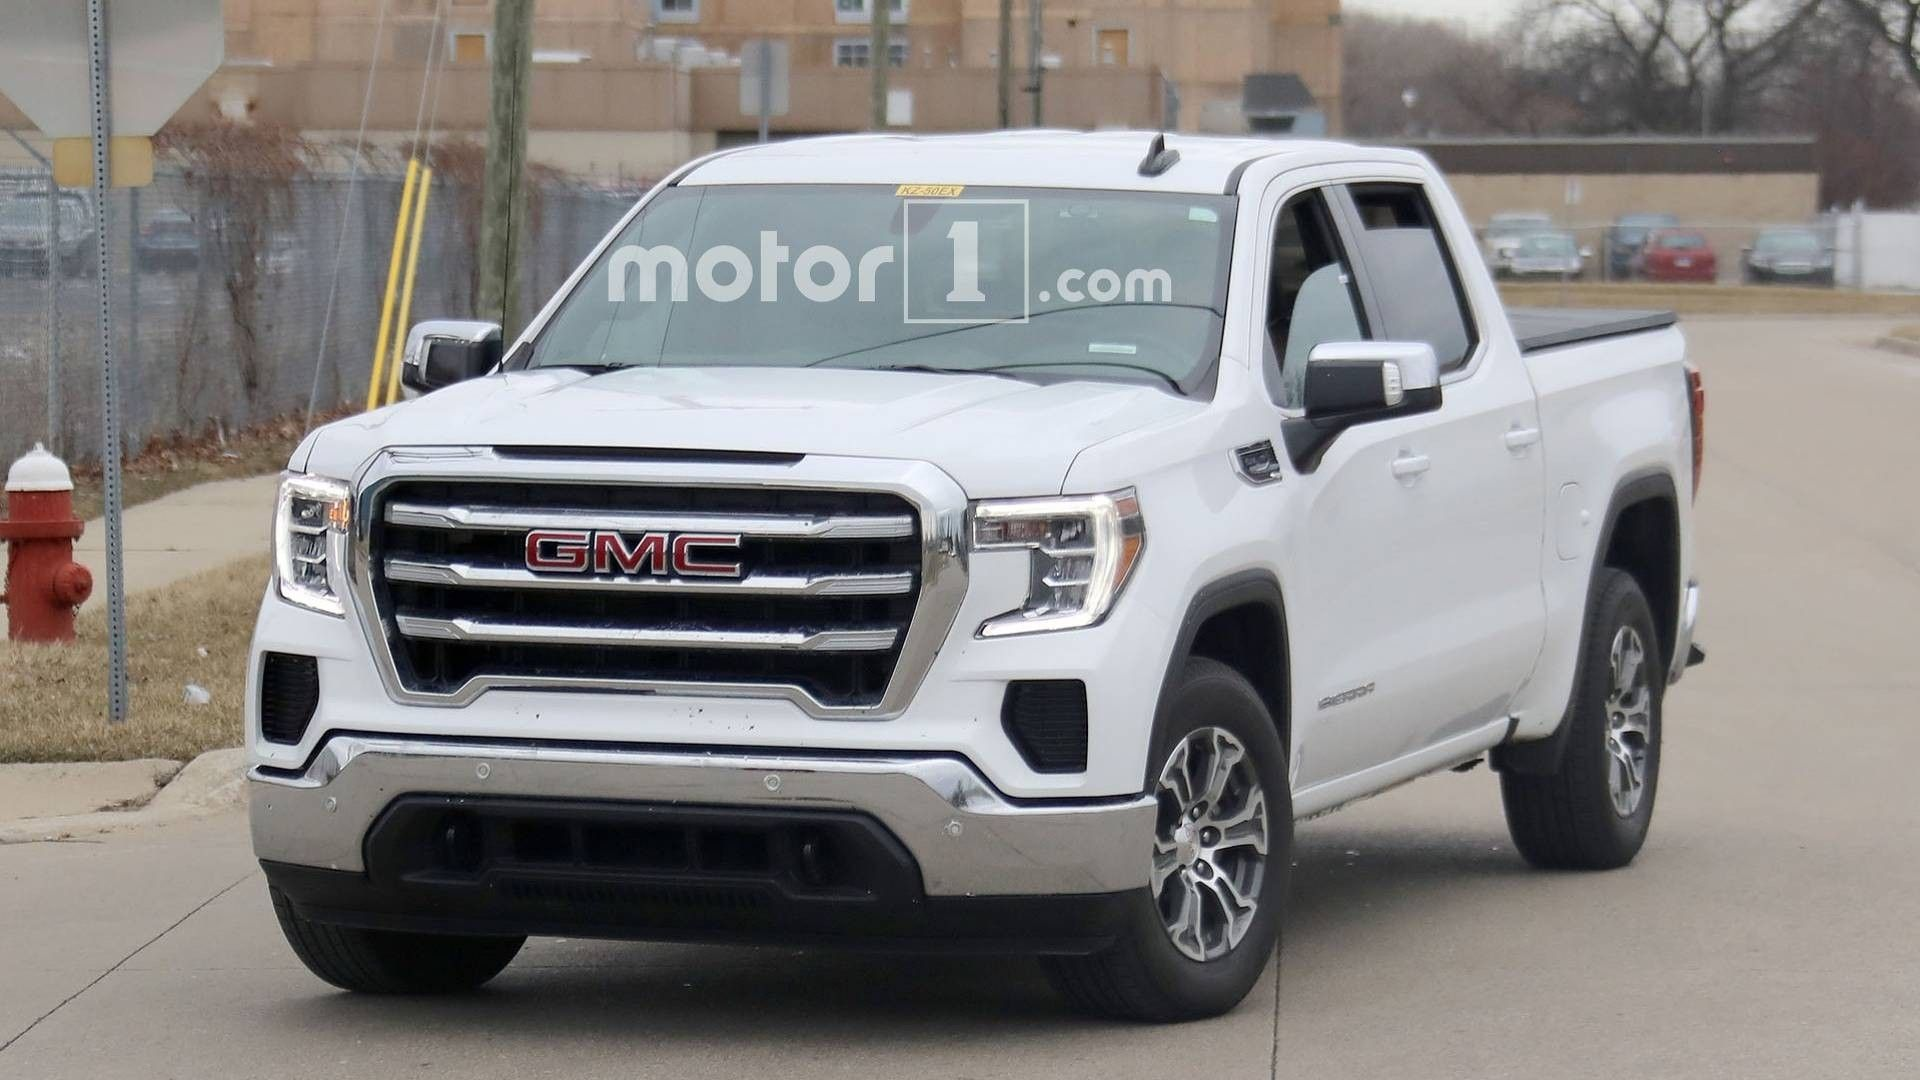 2019 Gmc Elevation Review Specs And Release Date Car Review 2019 Gmc Denali Truck Denali Truck Gmc